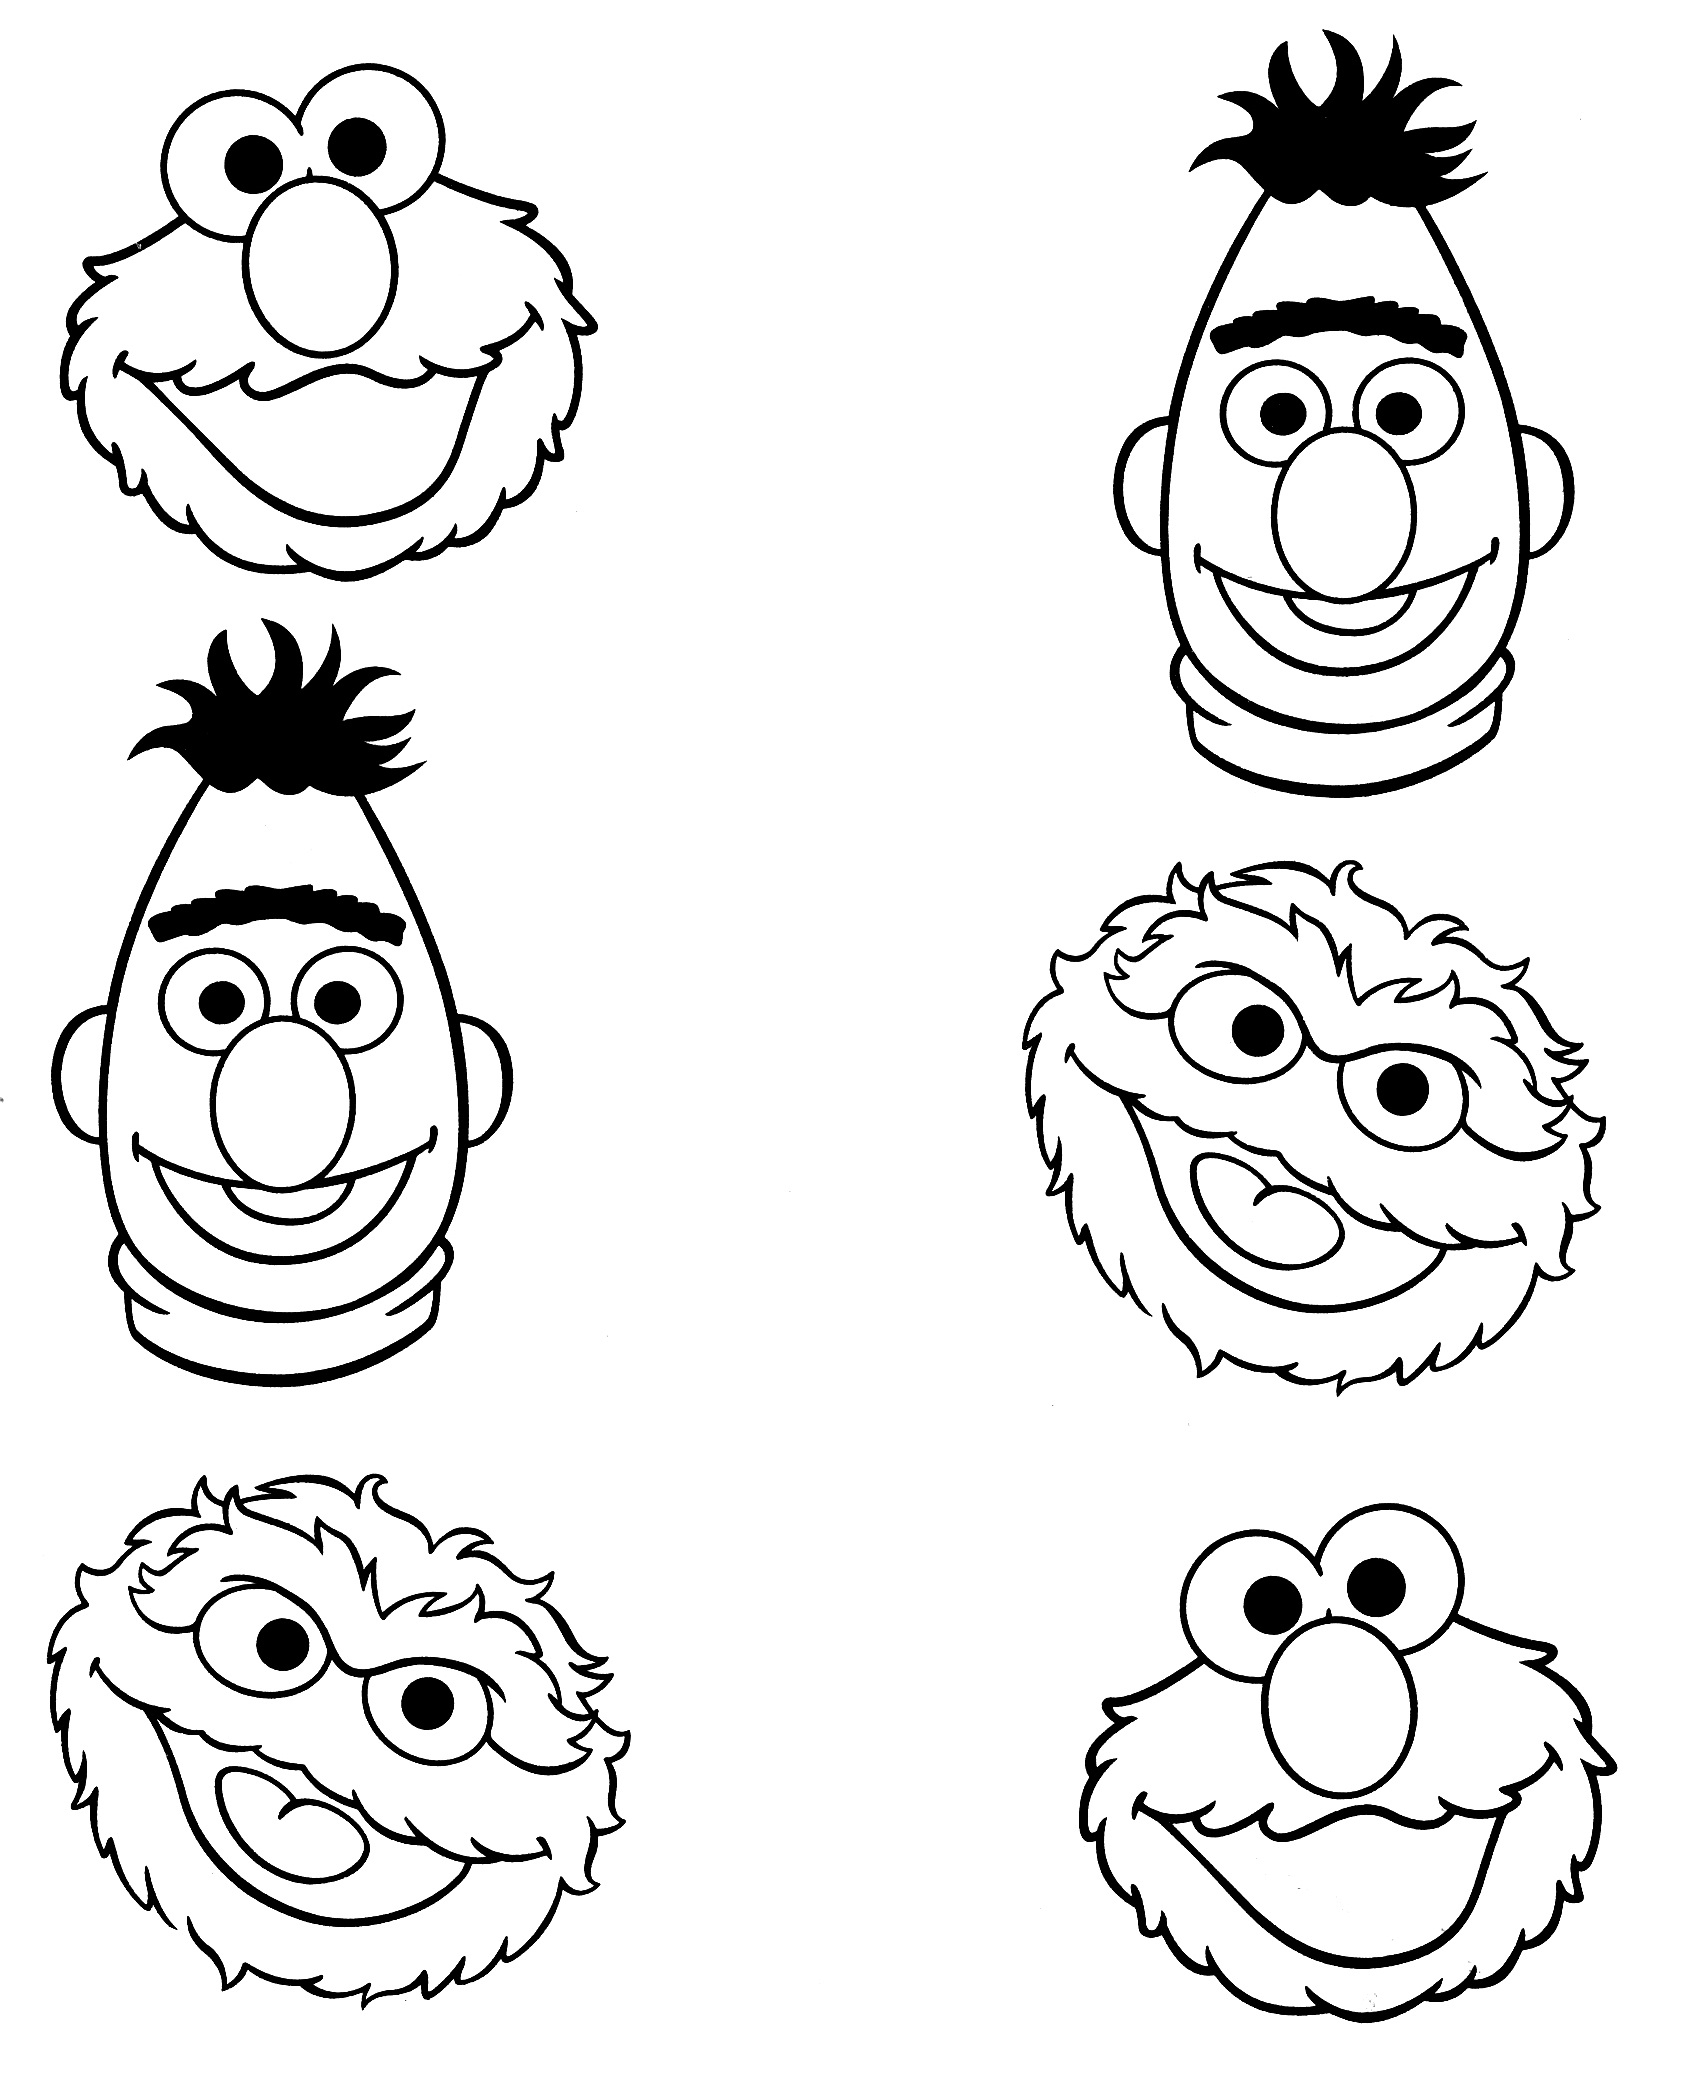 Sesame Street Characters Coloring Pages At Getcolorings